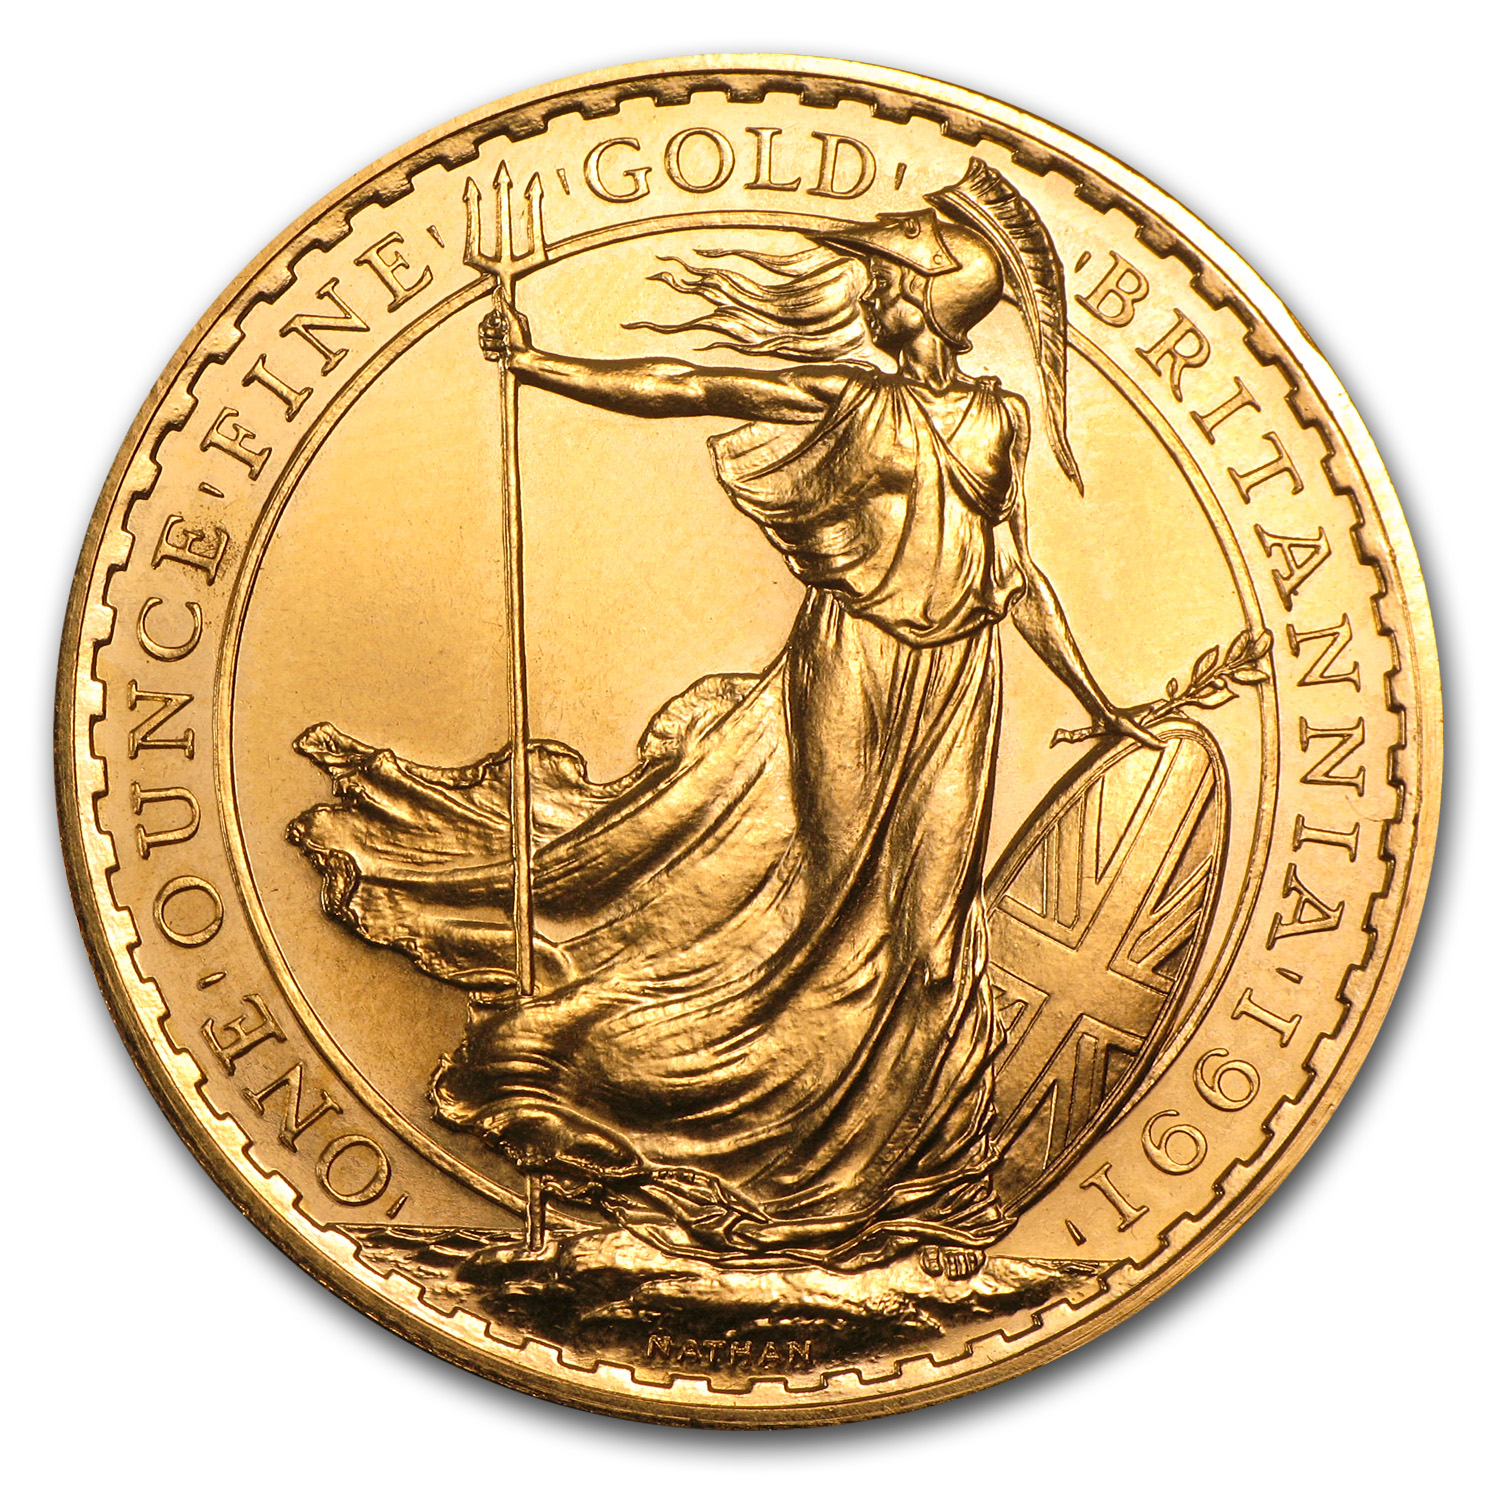 1 oz Gold Britannia Proof (Random Year, Abrasions)